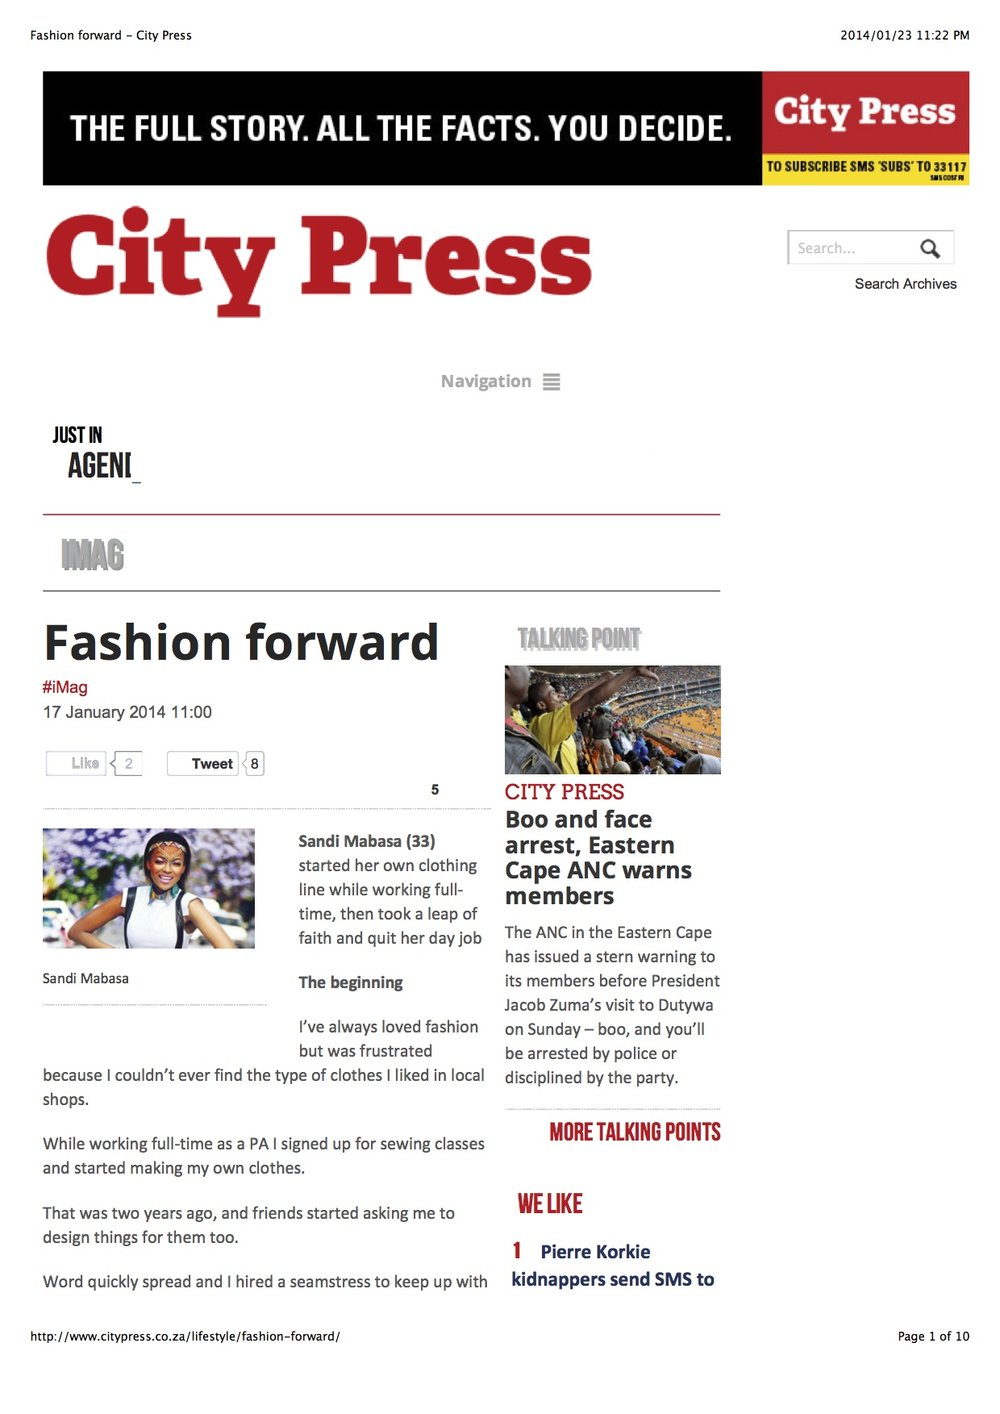 City Press-News24